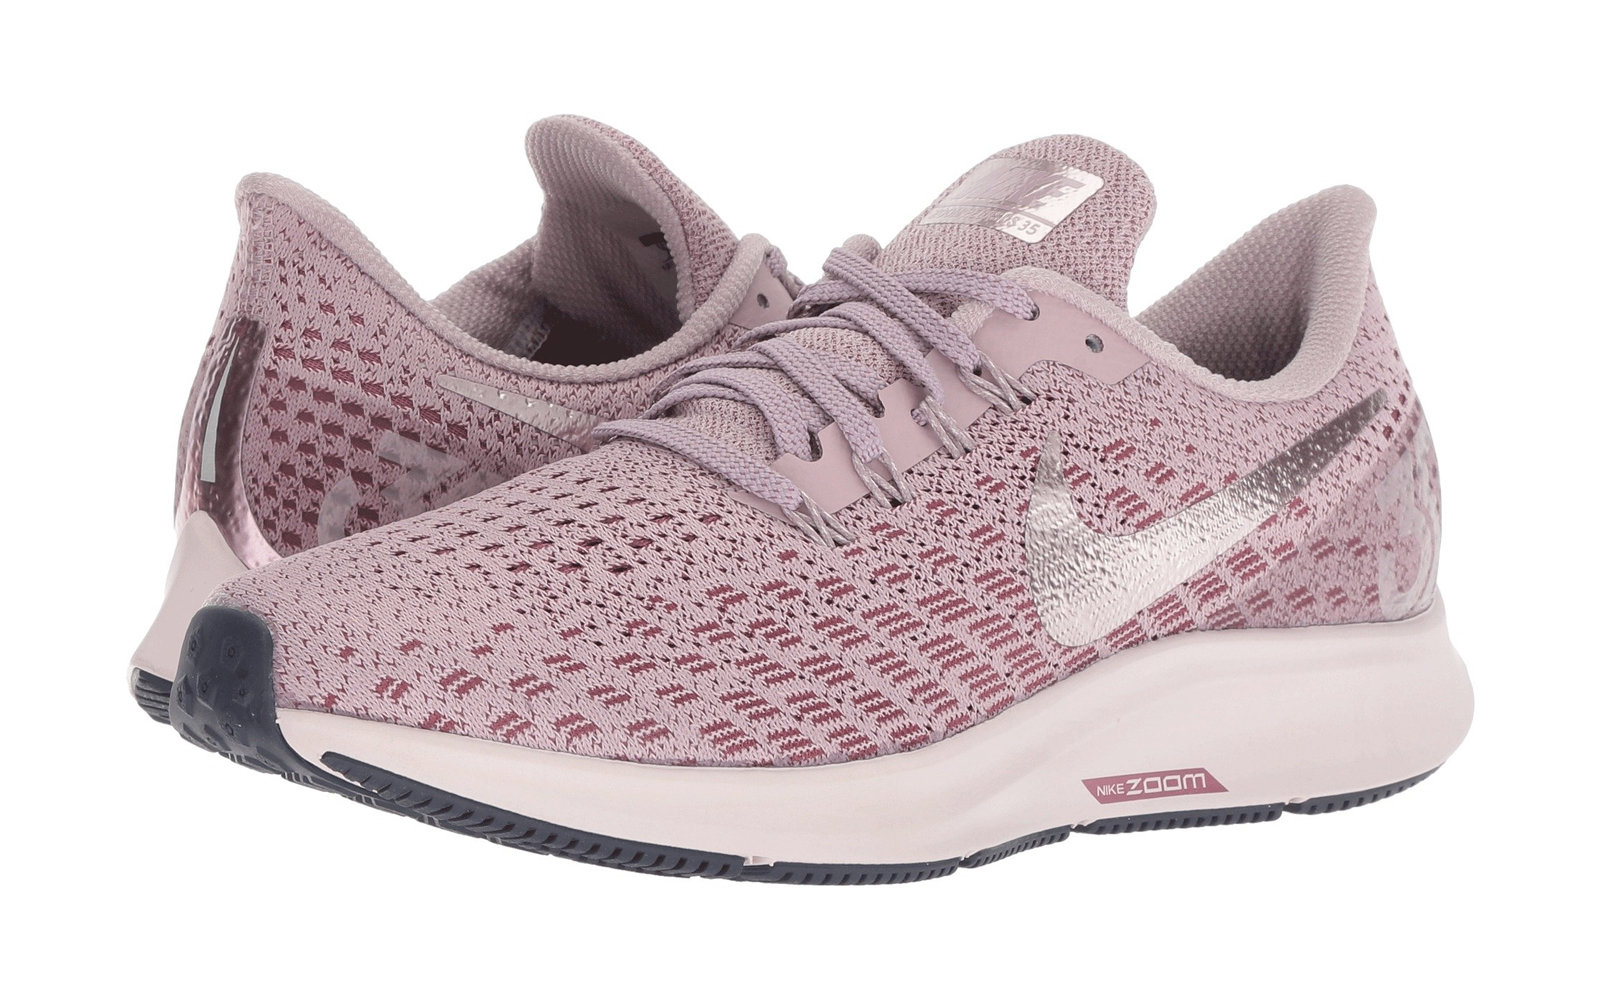 d0438217da29 Nike Air Zoom Pegasus 35 in Elemental Rose Barely Rose Vintage Wine. Best  Sneakers on Sale at Zappos